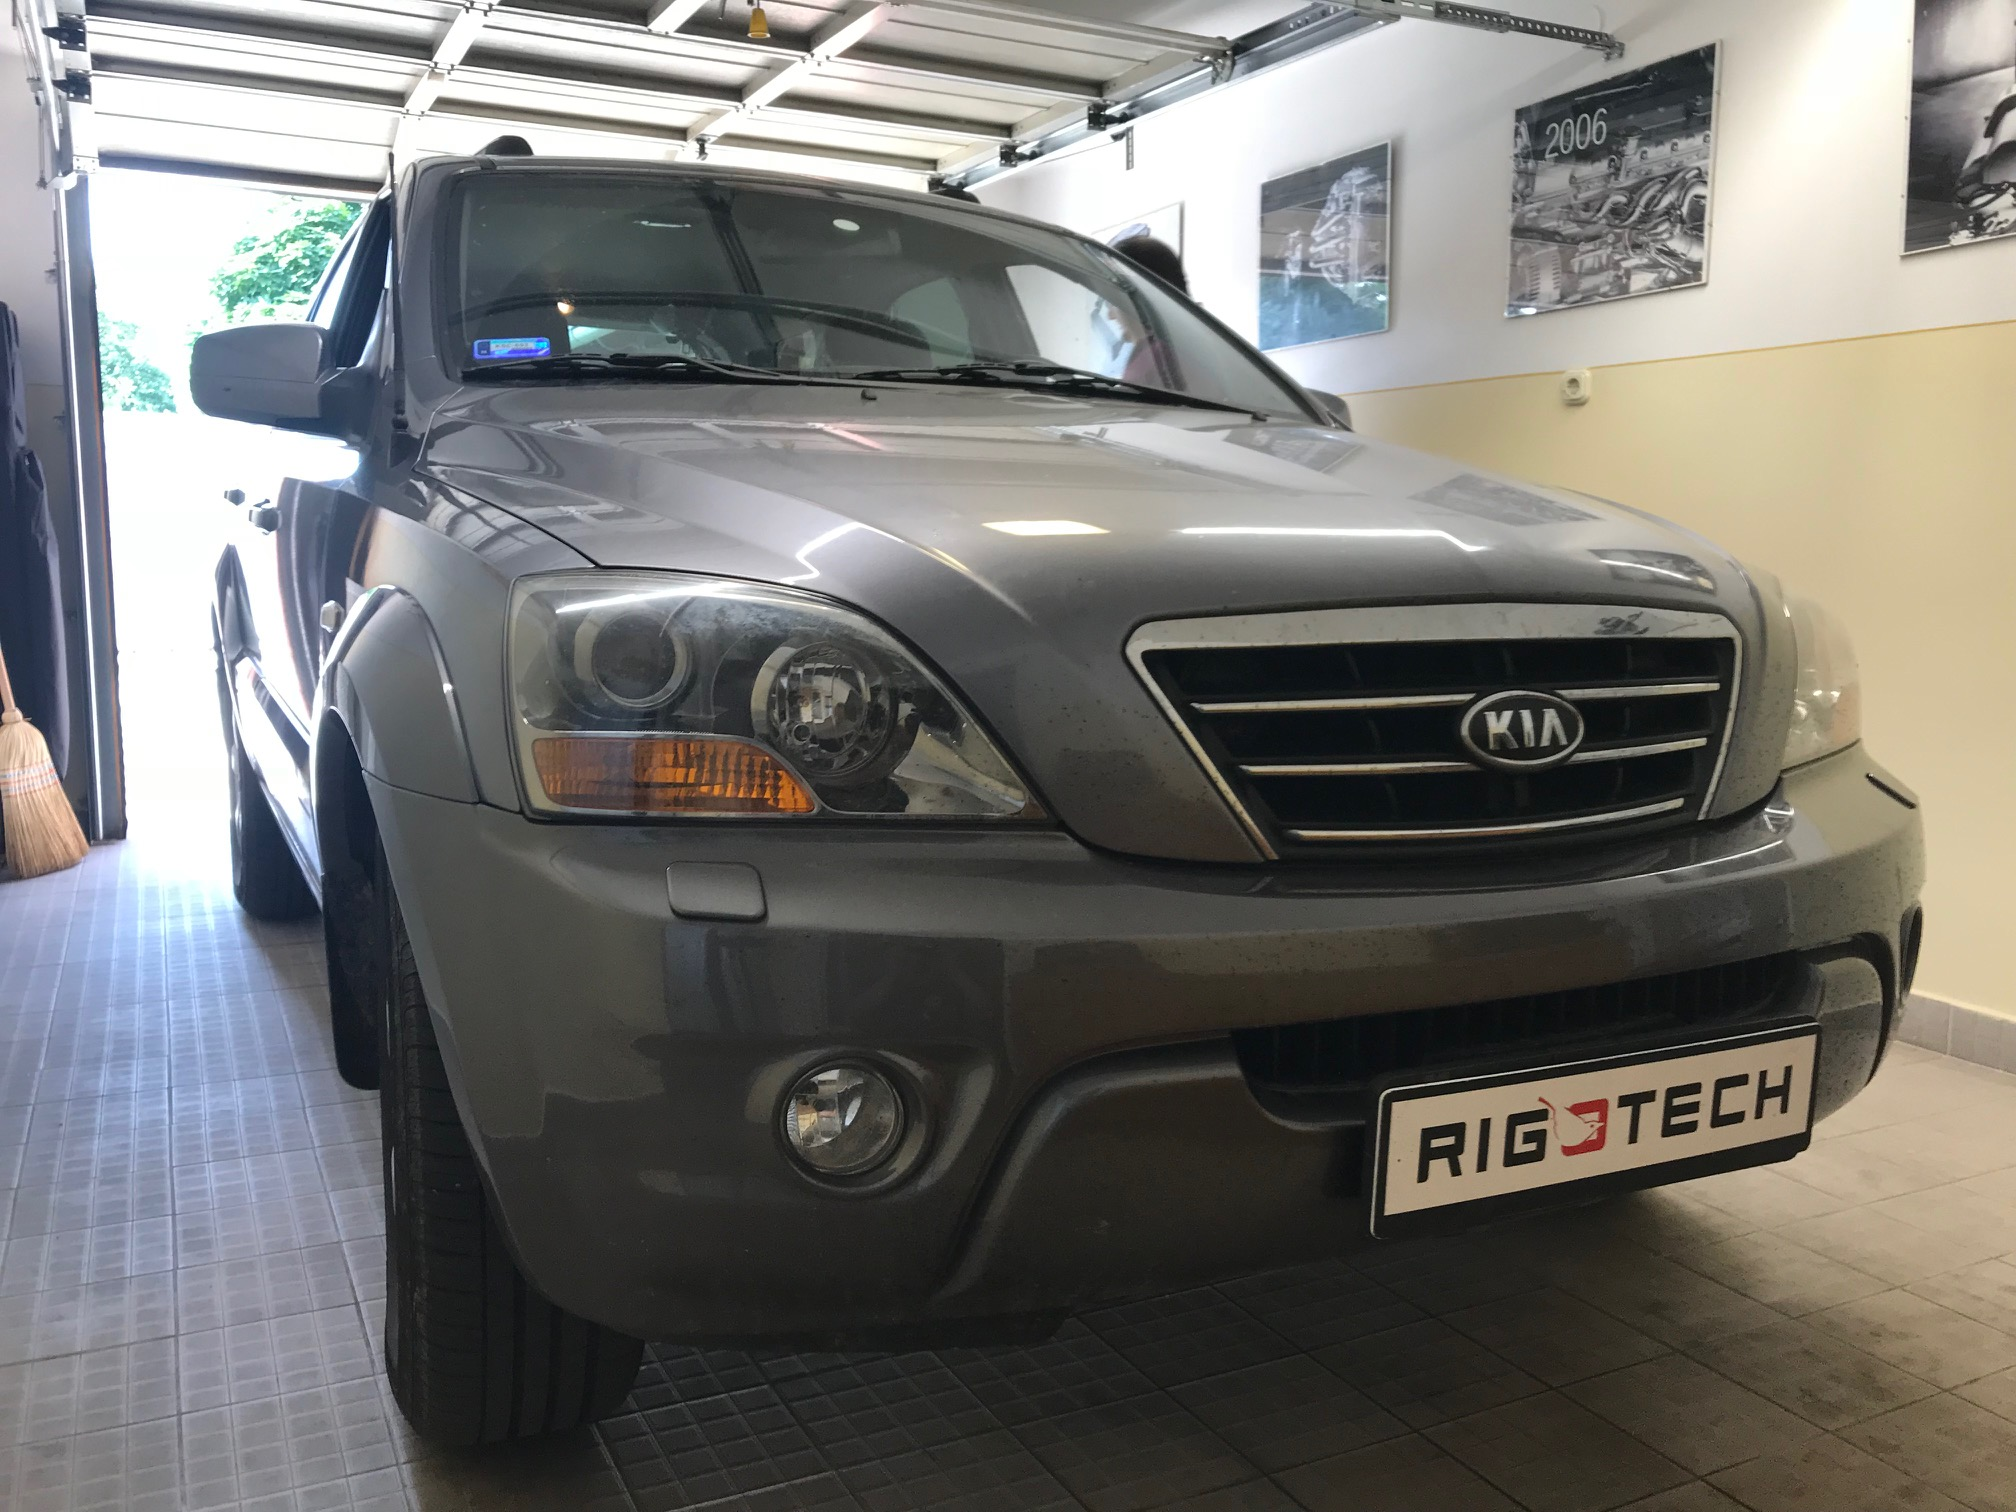 Kia-Sorento-25crdi-170Ps-Chiptuning